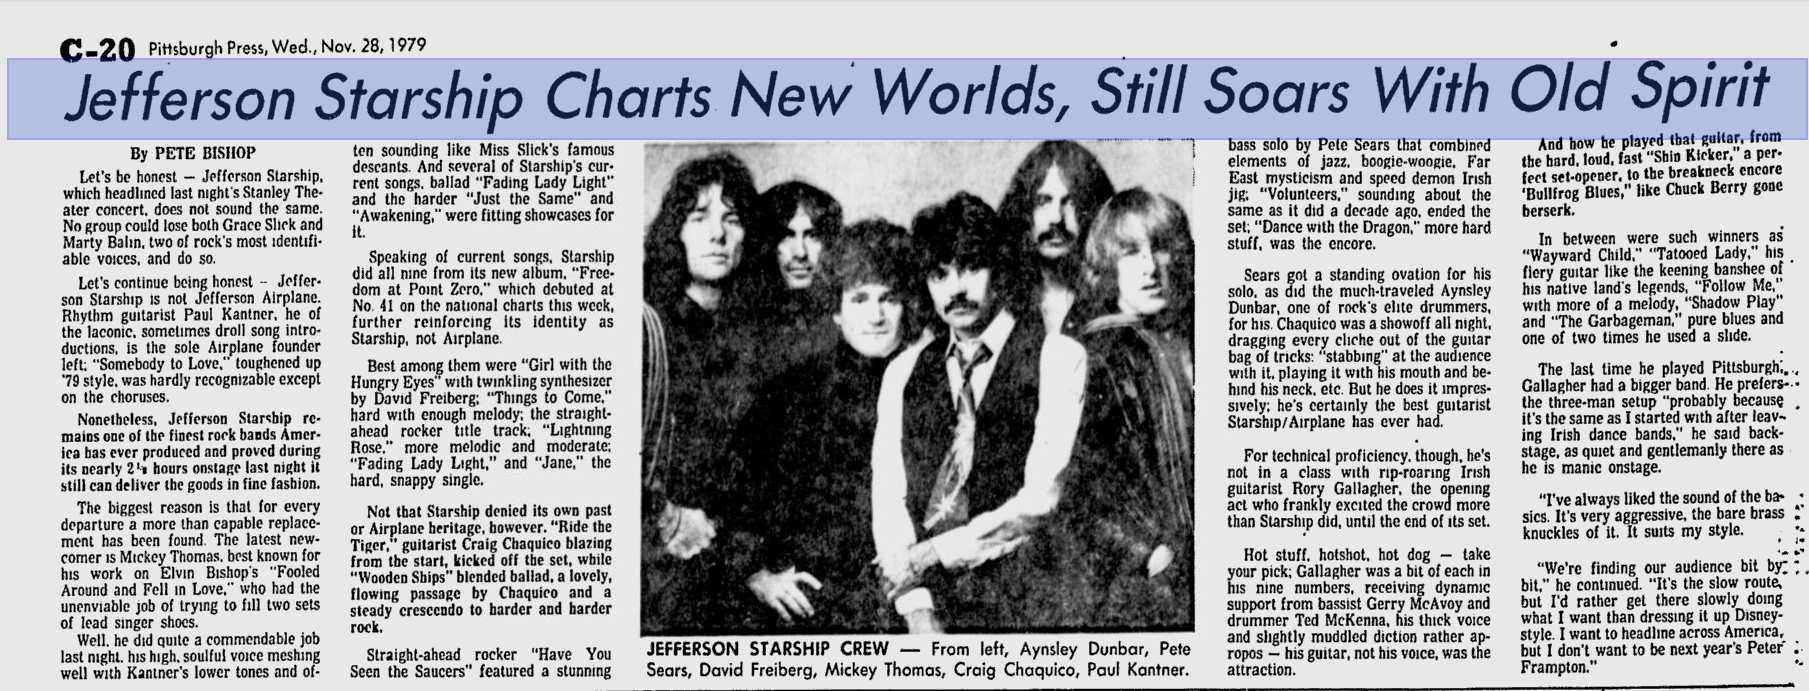 Pete Bishop's Pittsburgh Press review of the Jefferson Starship/Rory Gallagher show.